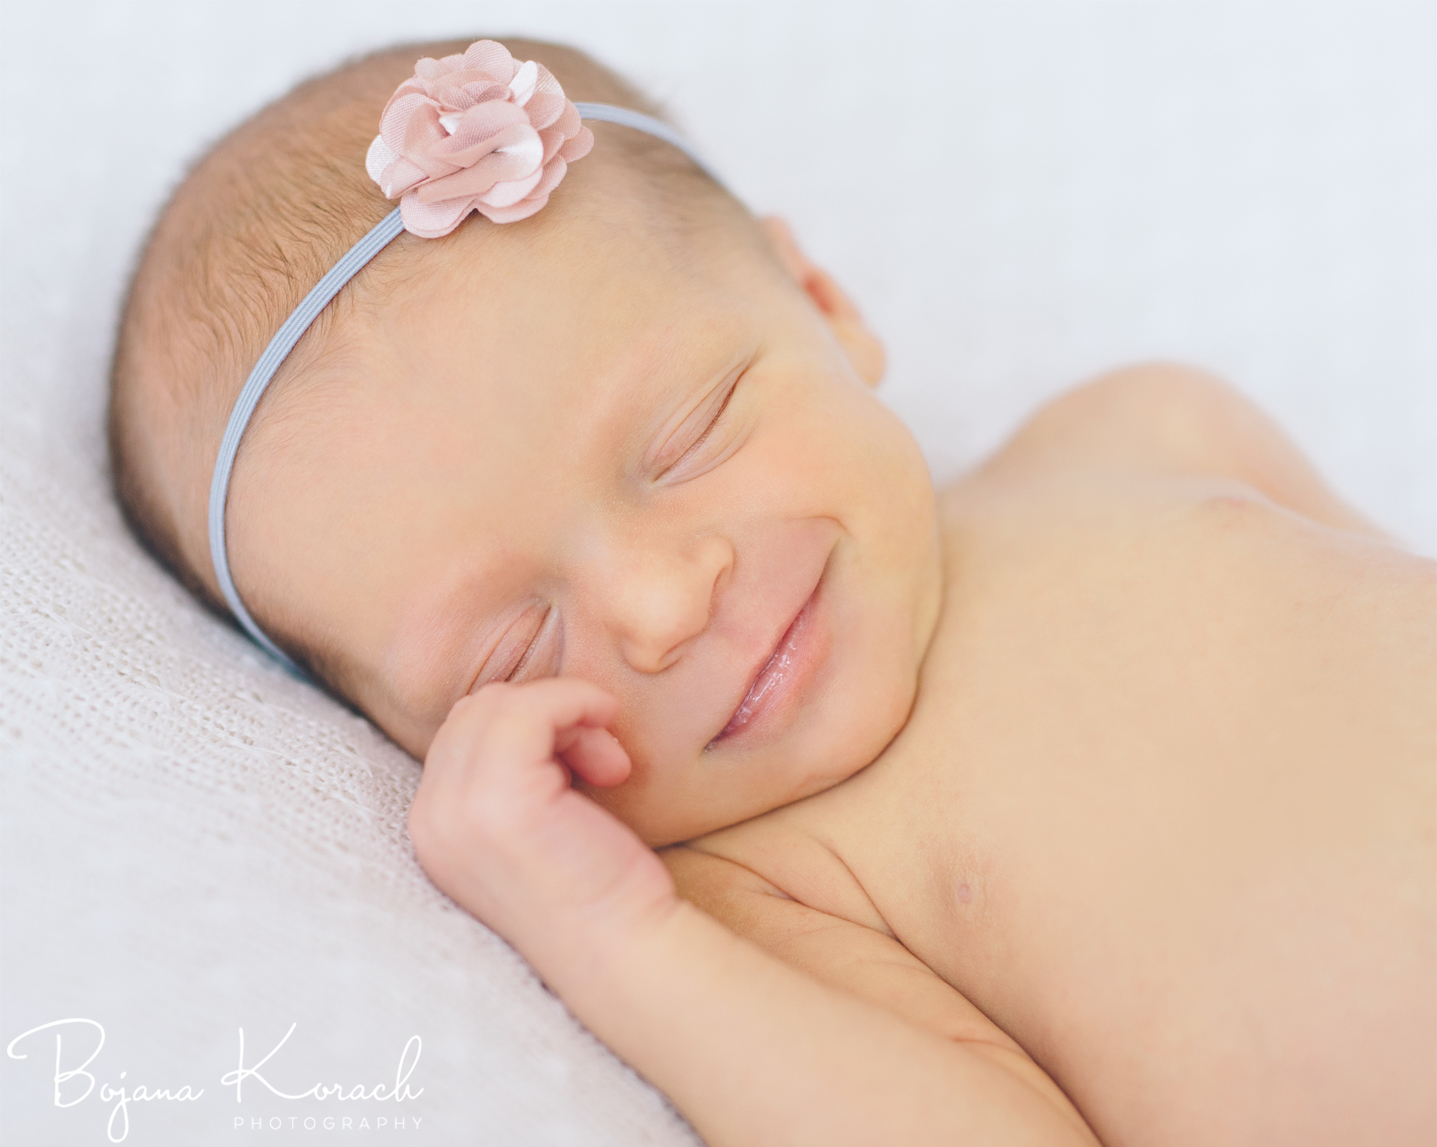 newborn baby smiling with a rose color headband